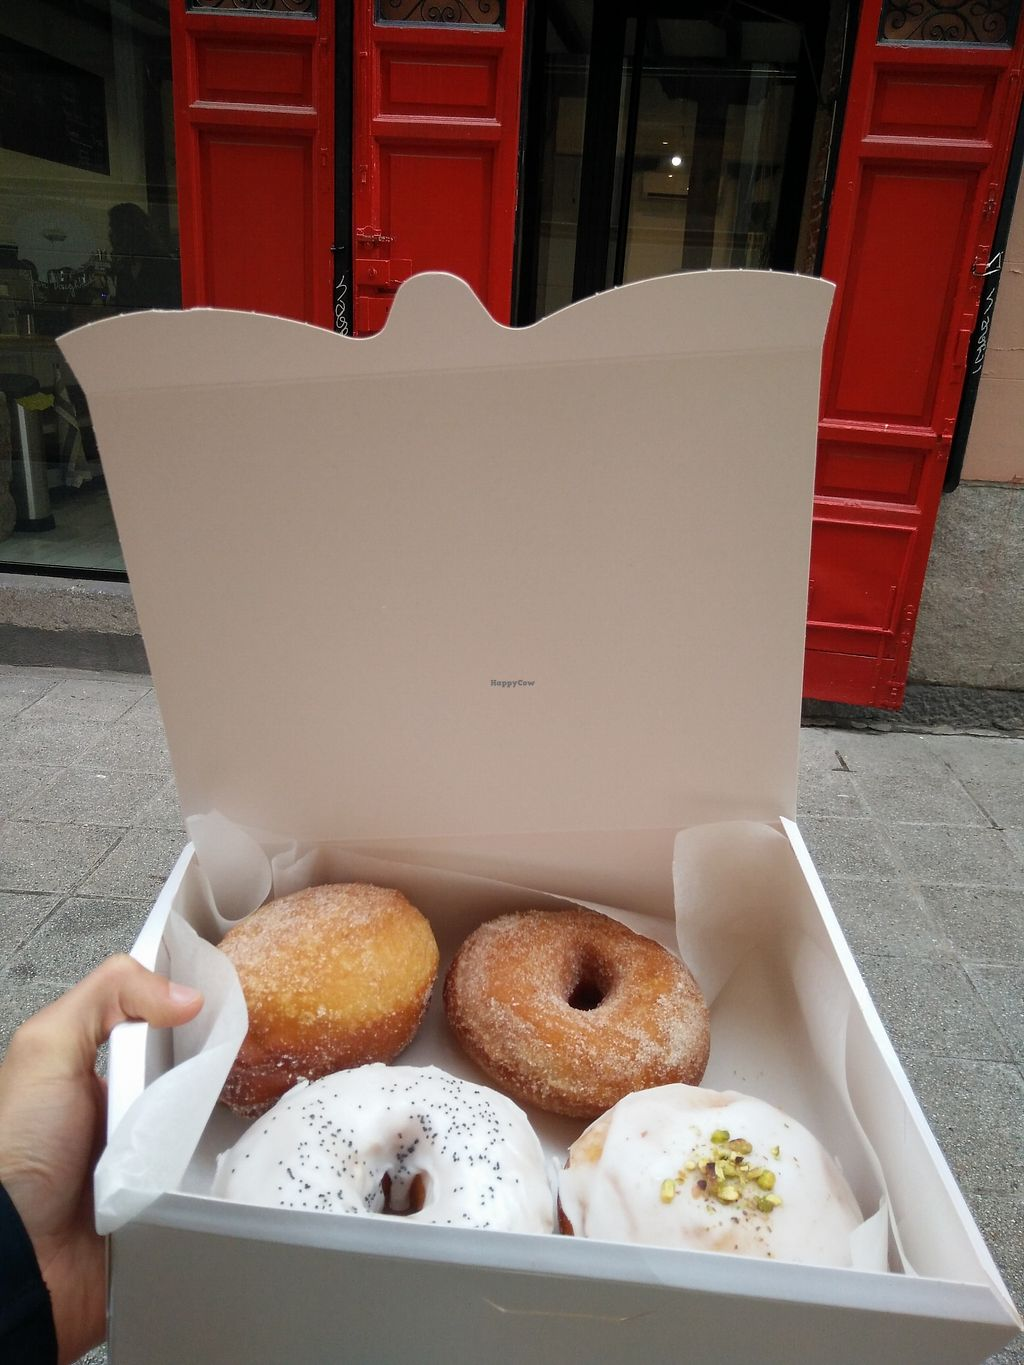 """Photo of Delish Vegan Doughnuts  by <a href=""""/members/profile/martinicontomate"""">martinicontomate</a> <br/>what I got <br/> March 17, 2018  - <a href='/contact/abuse/image/100403/372138'>Report</a>"""